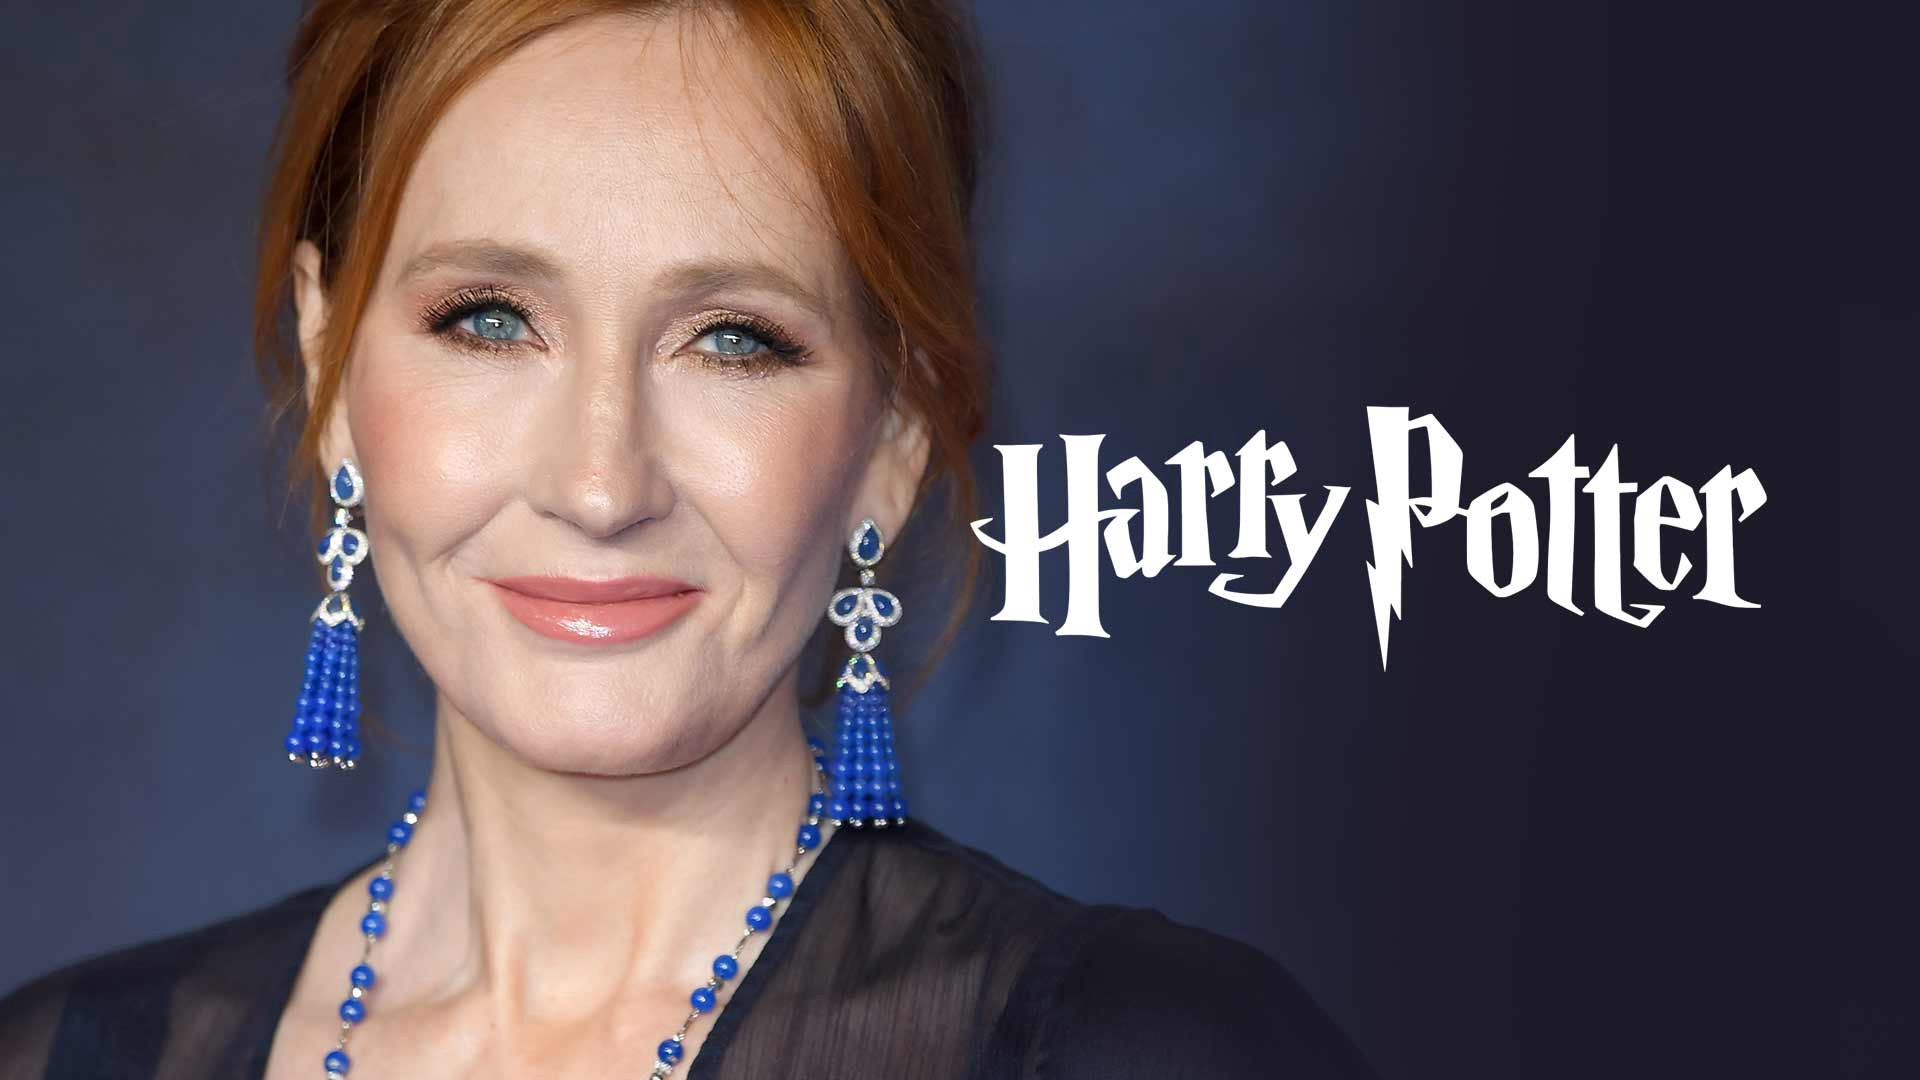 JK Rowling link to her website